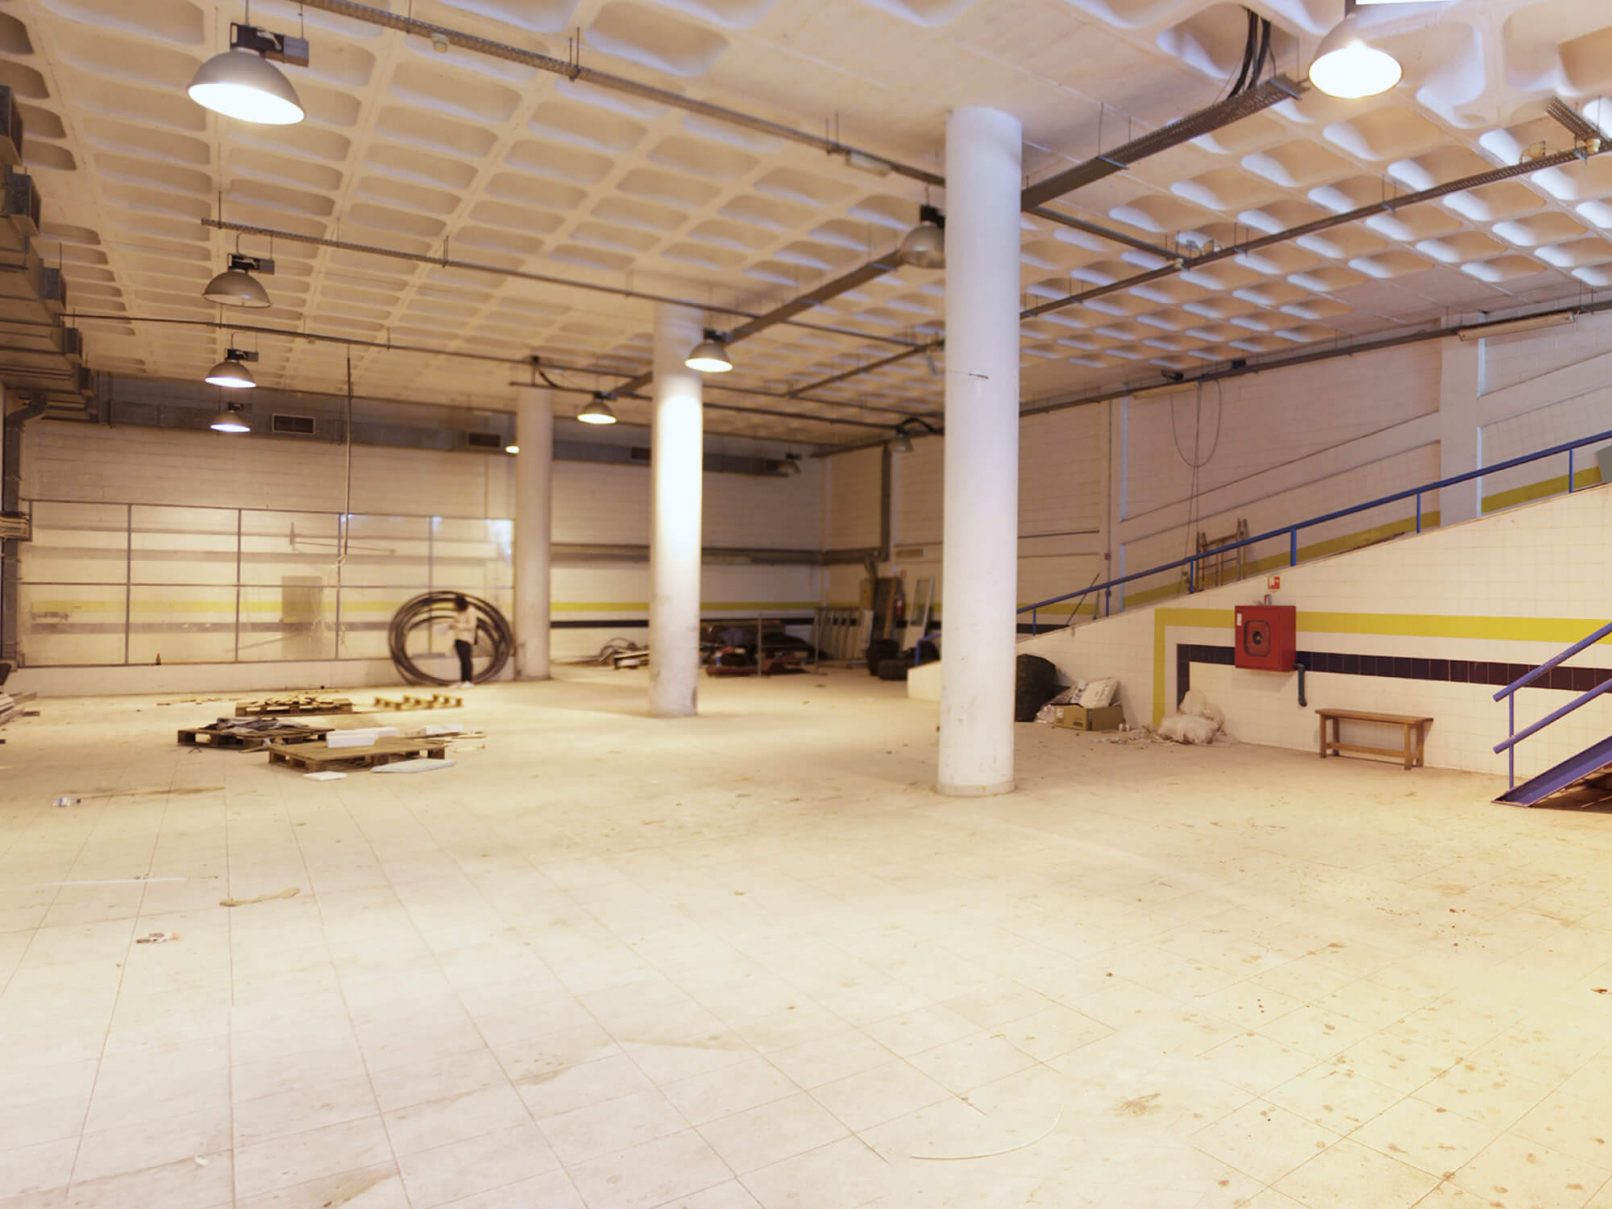 Photo of the space before its conversion into a crossfit box.